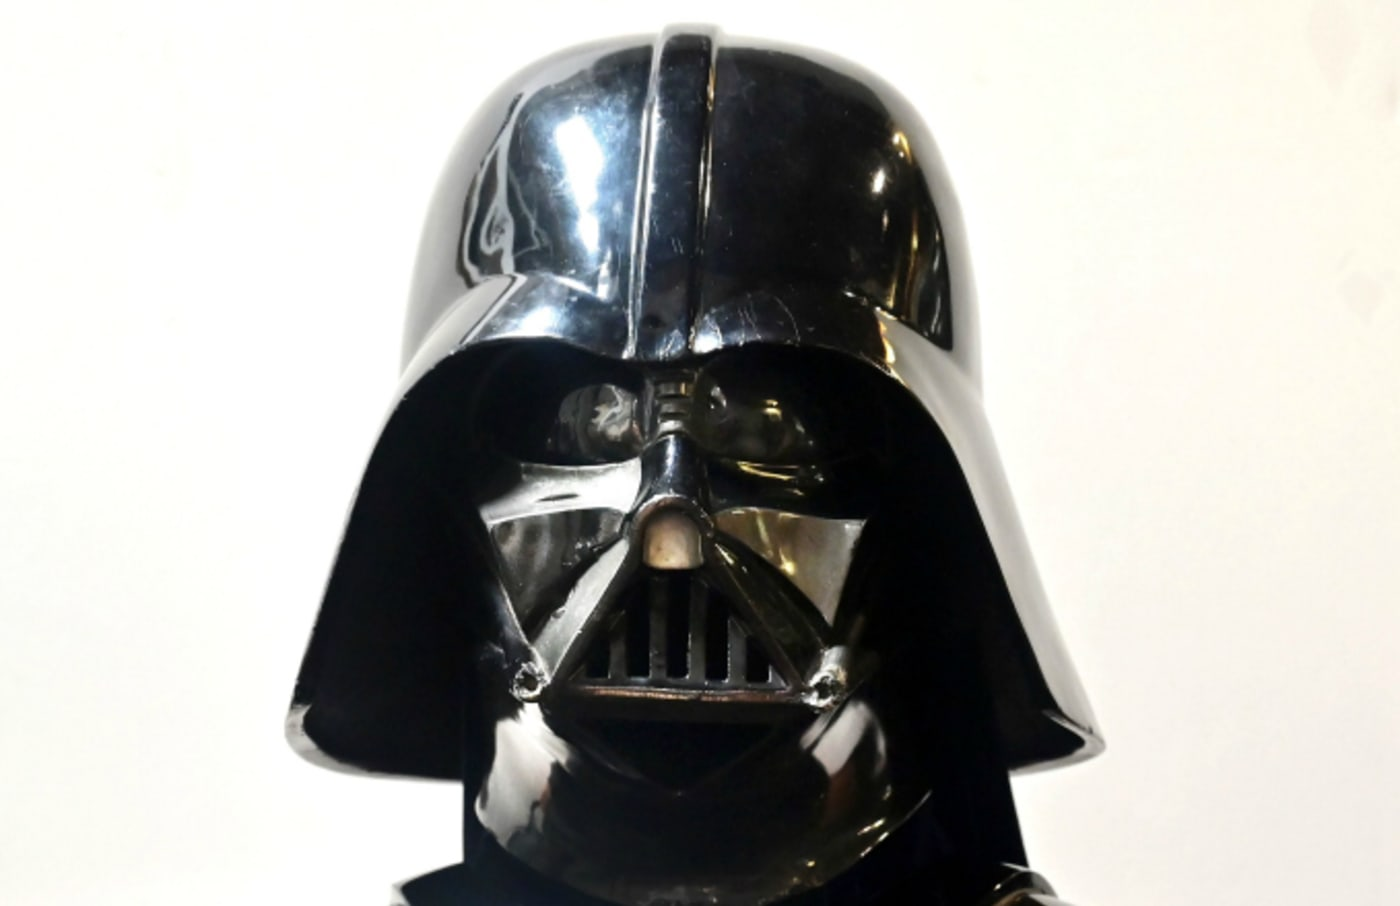 """A Darth Vader helmet and mask from the film """"The Empire Strikes Back"""" on display"""